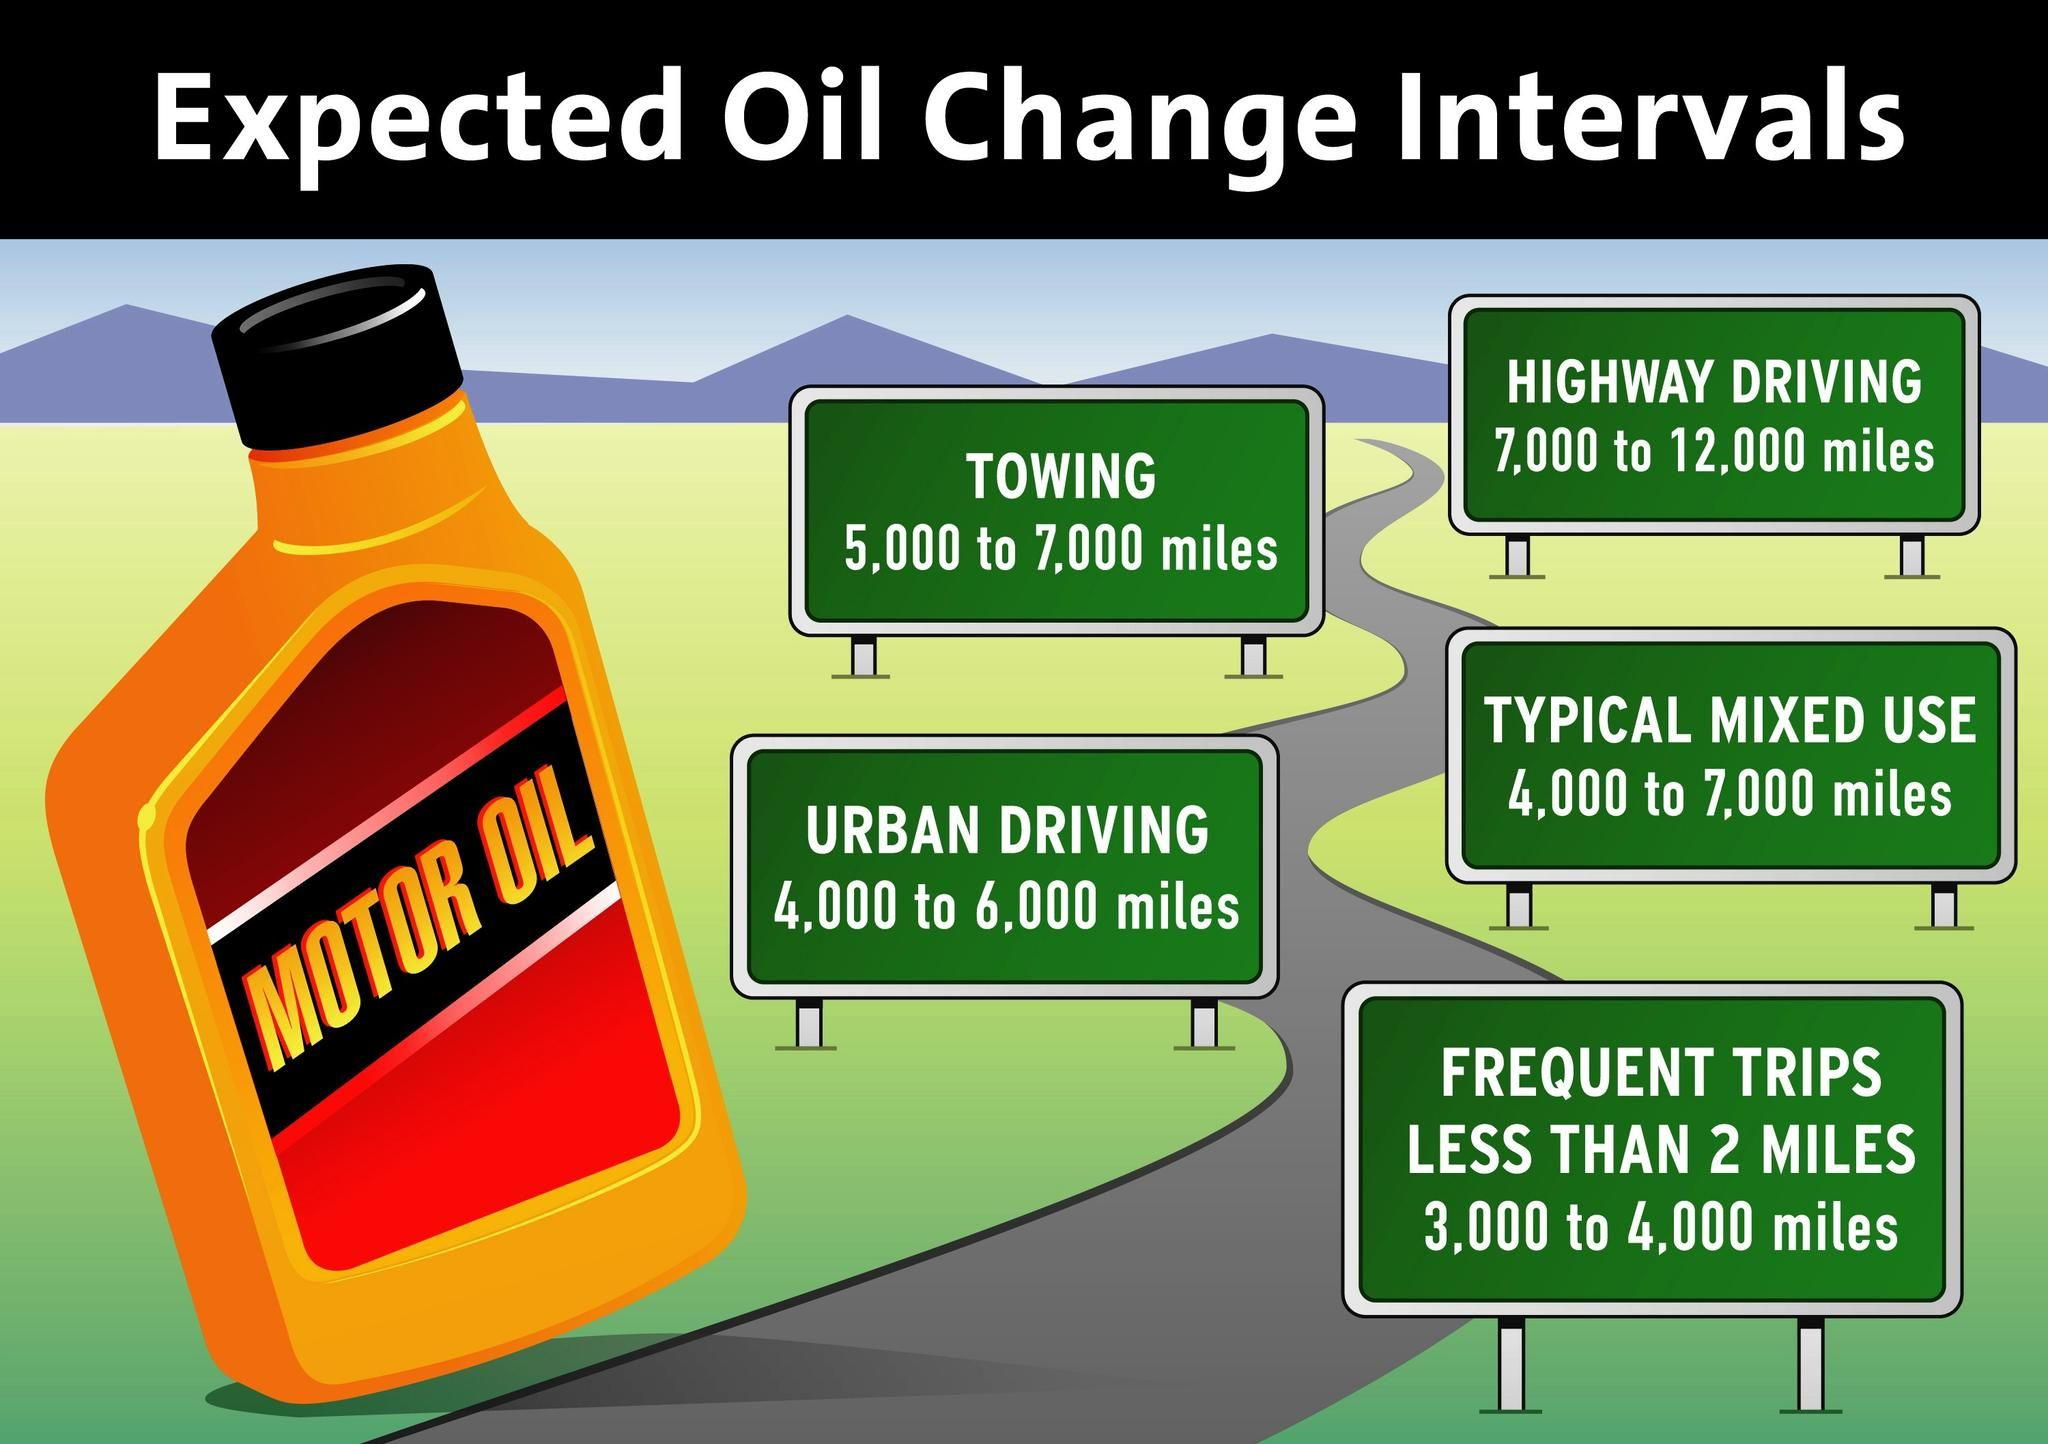 This graphic, created by GM several years ago, gives a